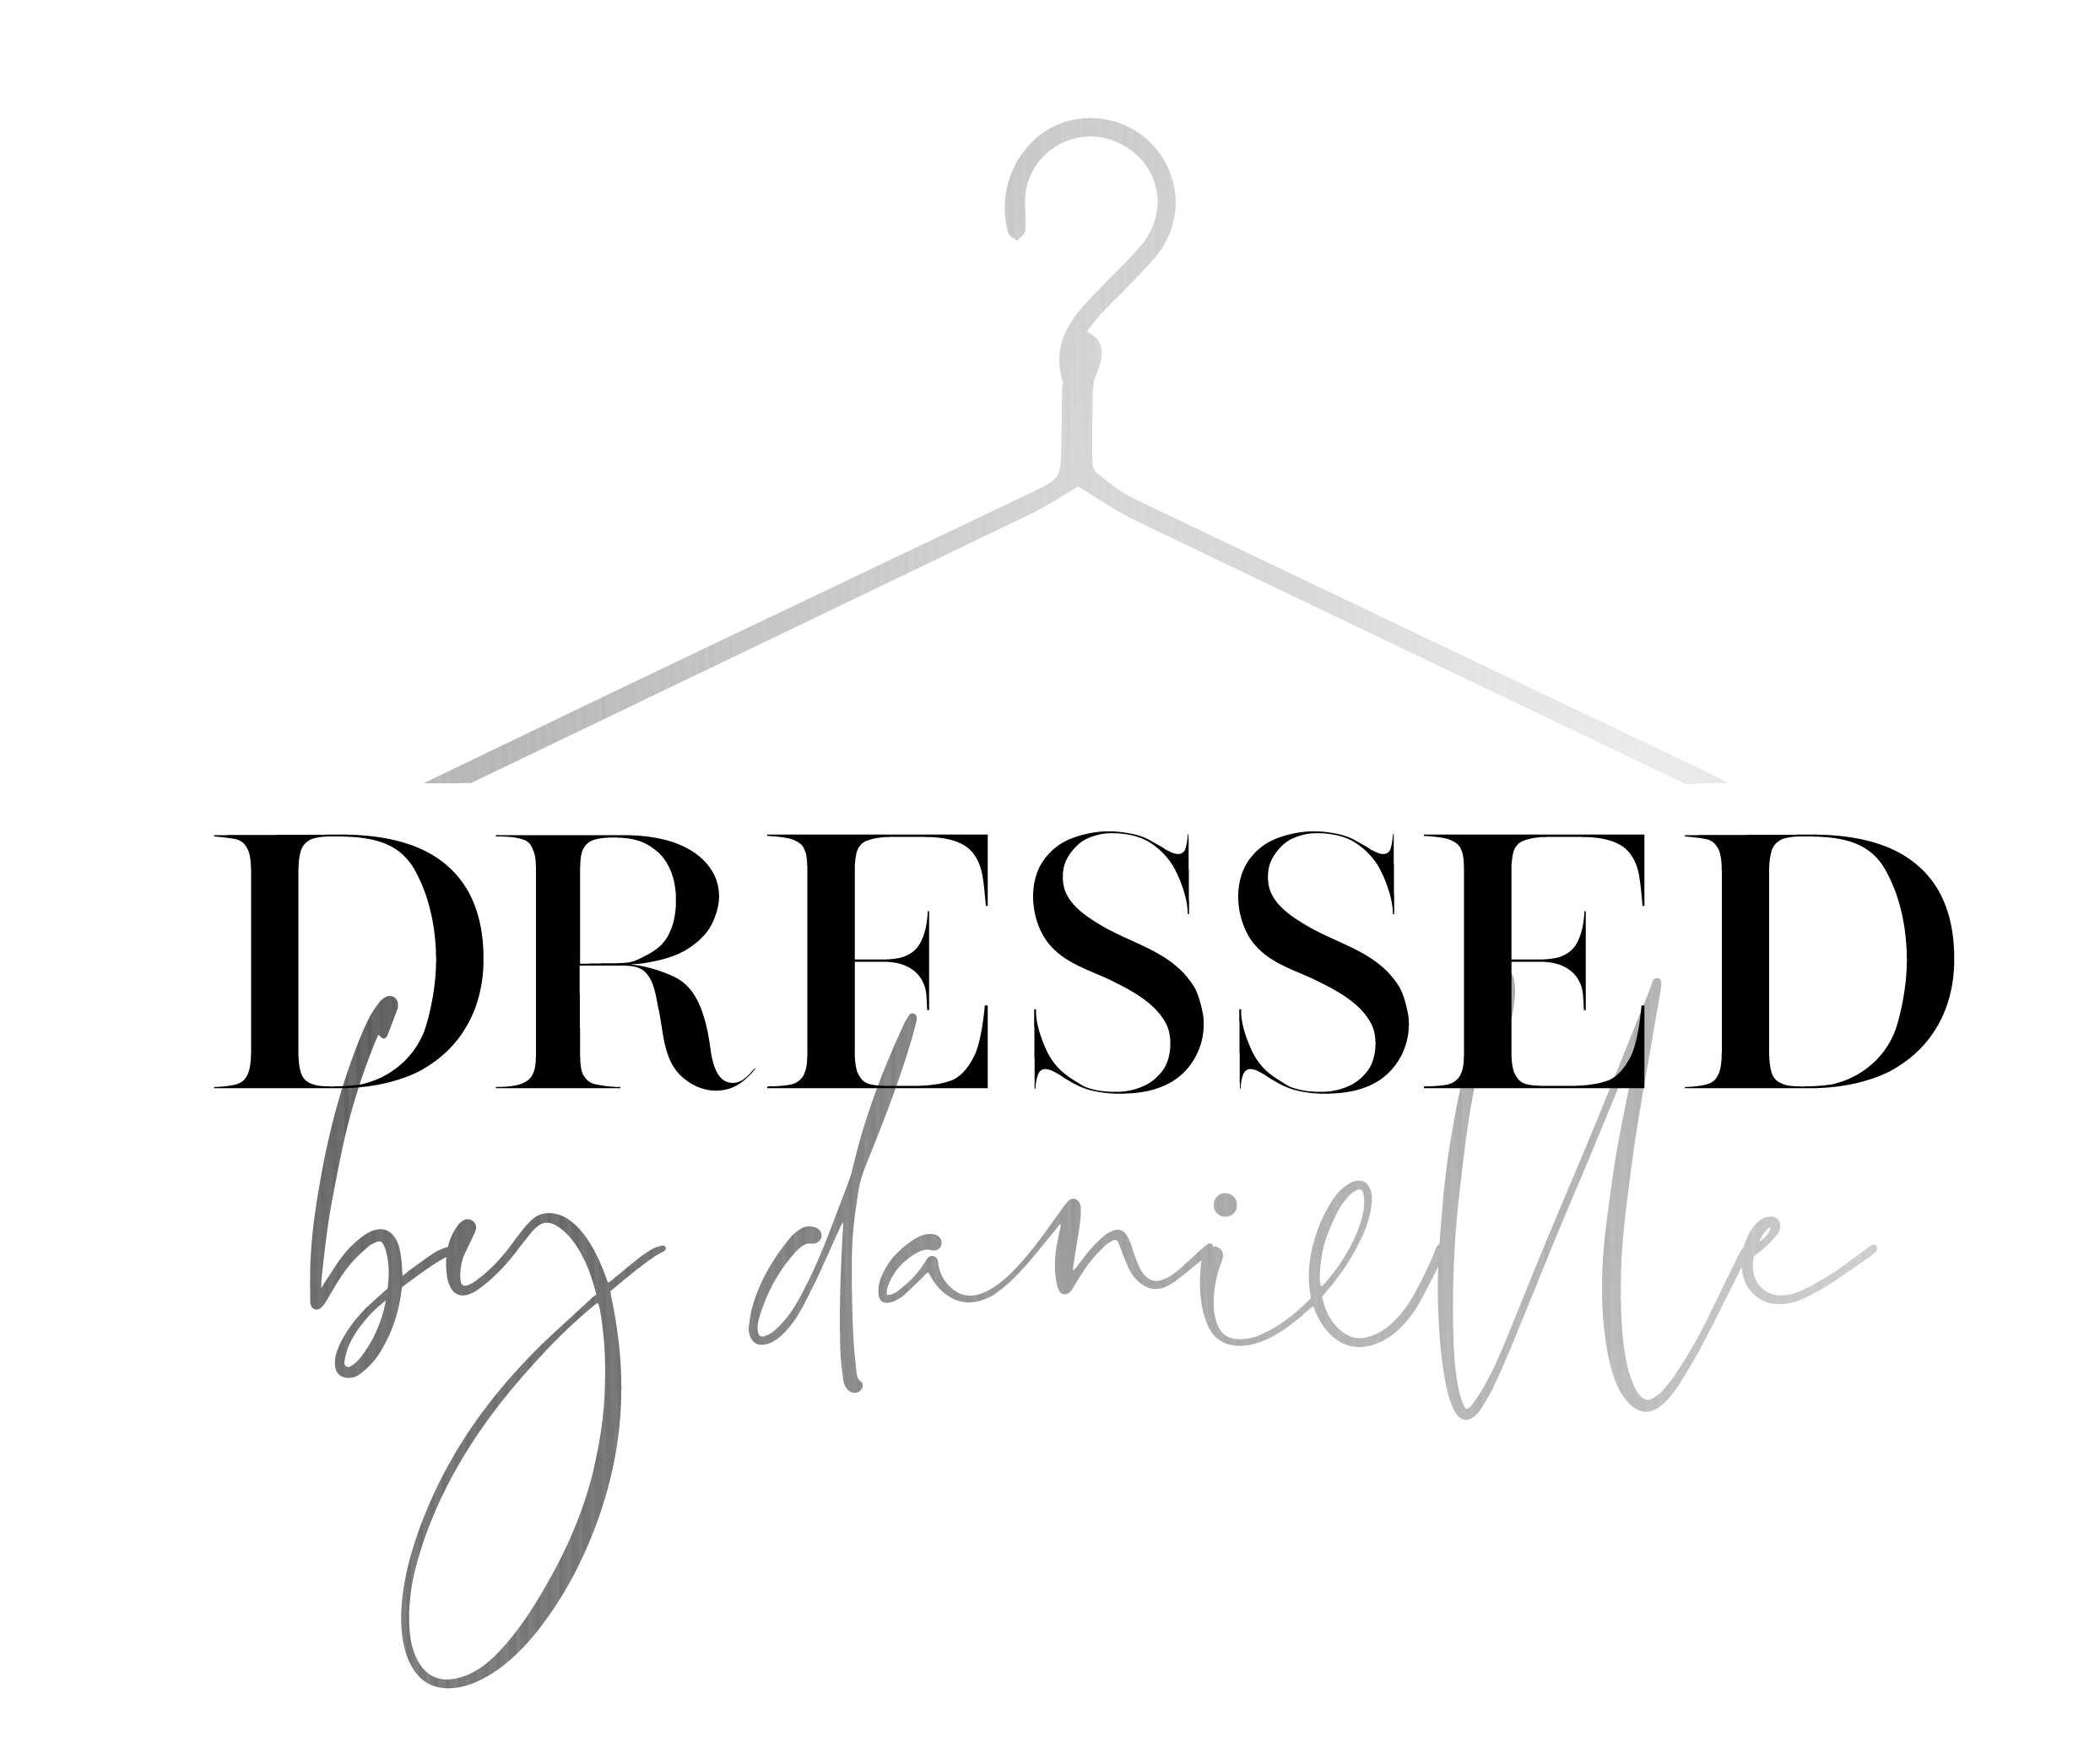 Dressed by Danielle